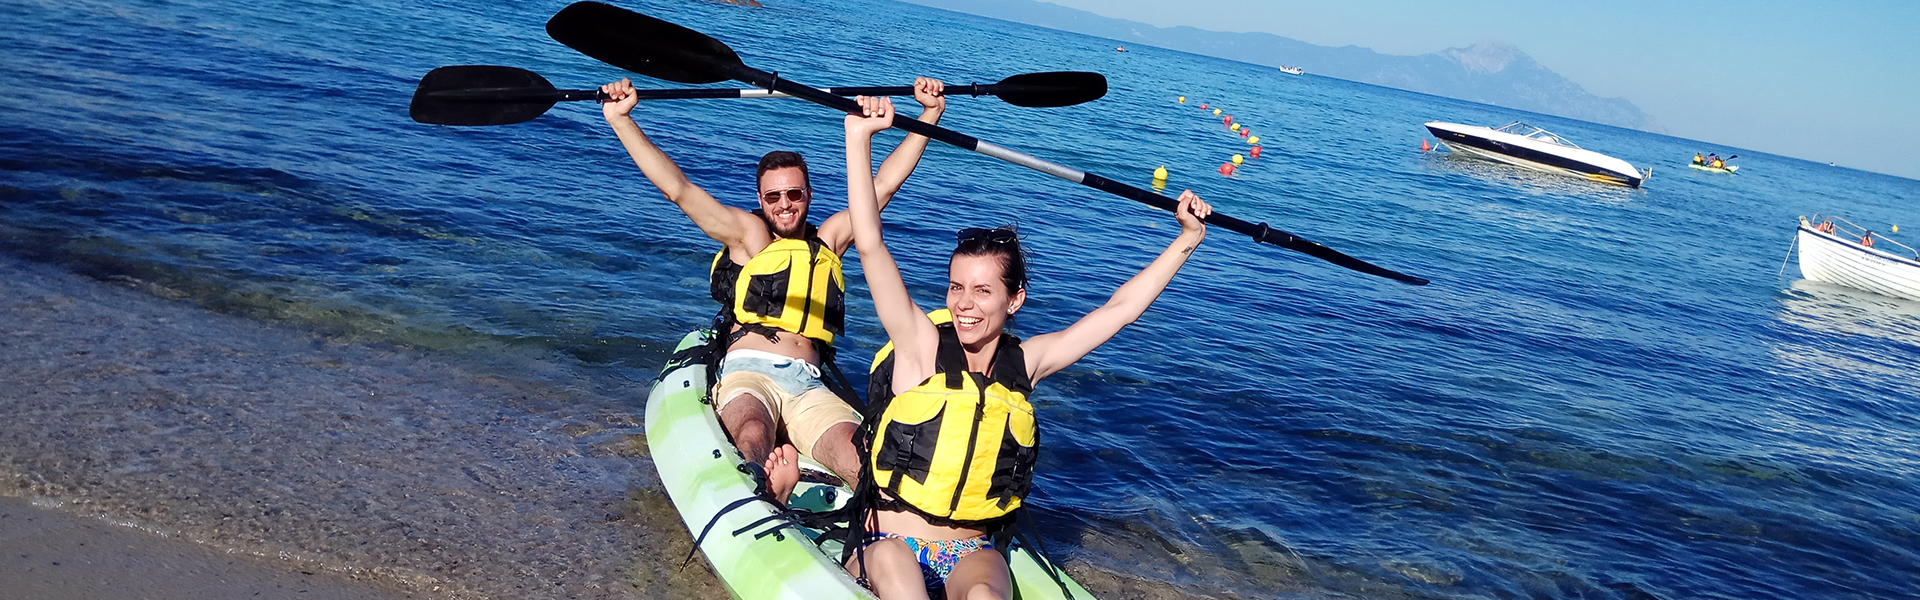 Kayak Sup Explorers - Tours Halkidiki 1